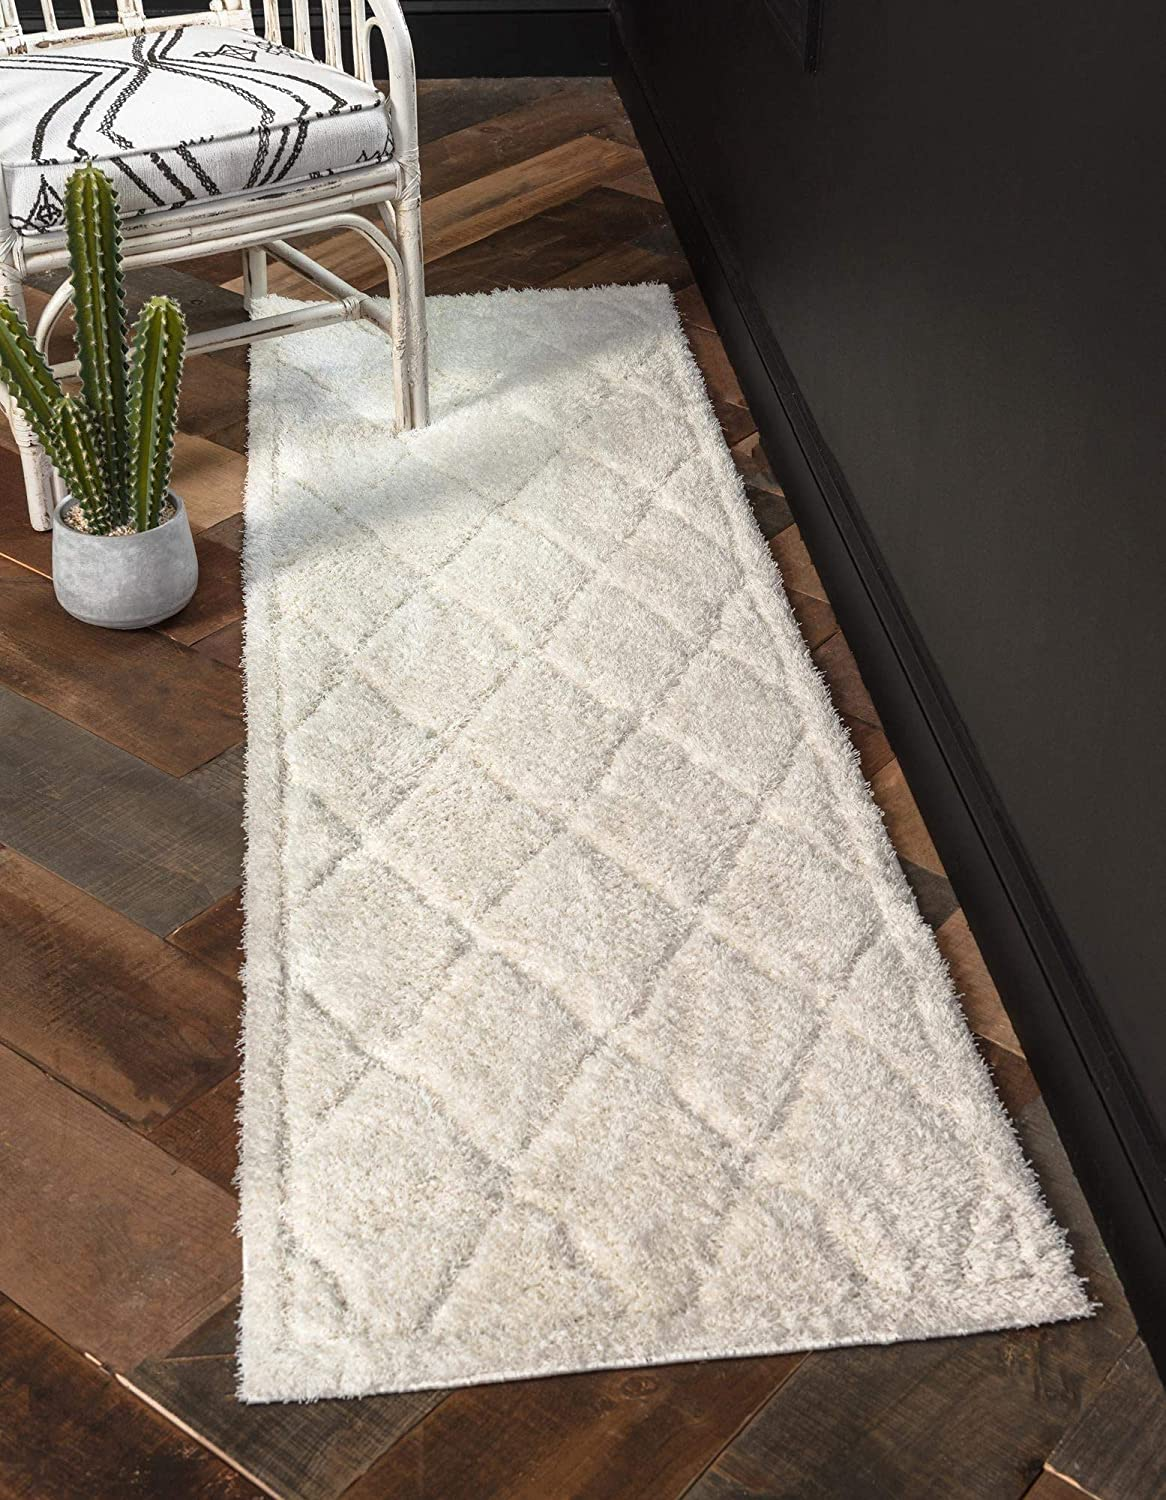 Rugs.com Lattice Shag Collection Rug Popular shop is the lowest price challenge – 10 Ft Ivory Max 83% OFF S Runner